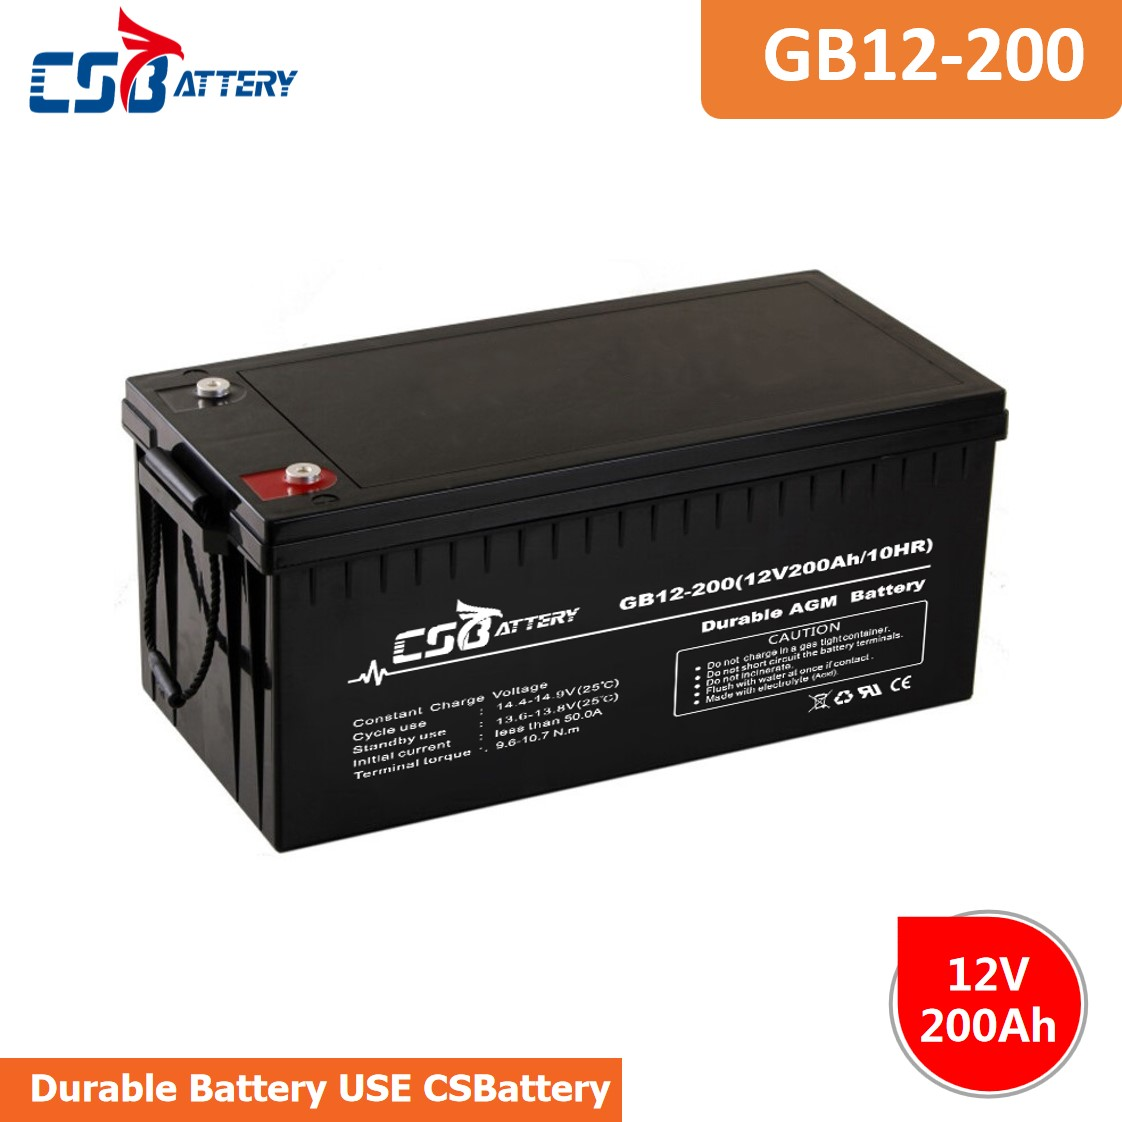 CSBattery 12V 200Ah rechargeable AGM battery for Electric-power/Emergency-systems/Booster-Pumps/forklift